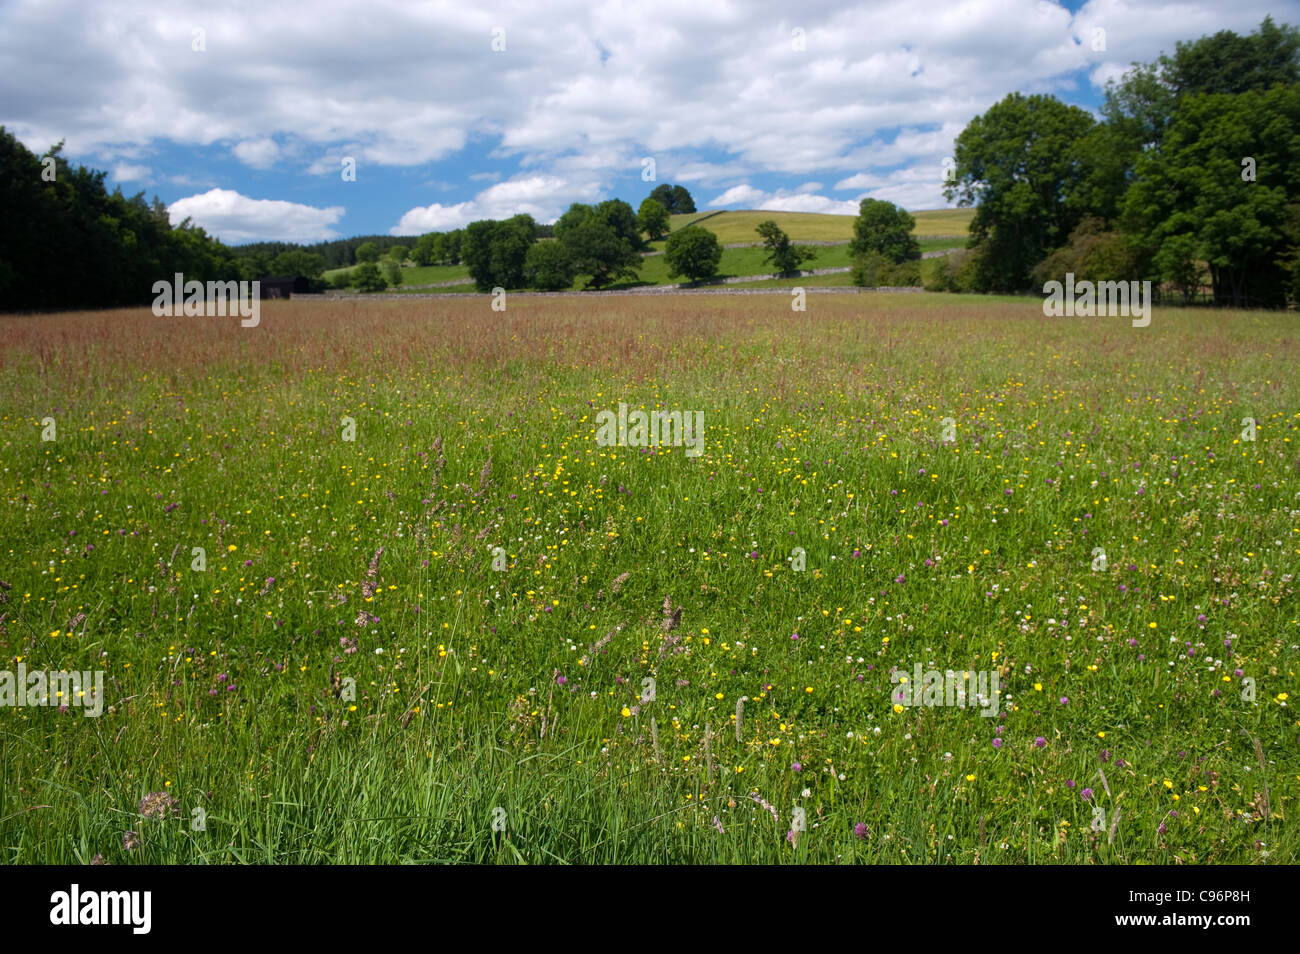 Traditional hay meadow with wildflowers in ready for cutting. Upper Teesdale, UK. - Stock Image